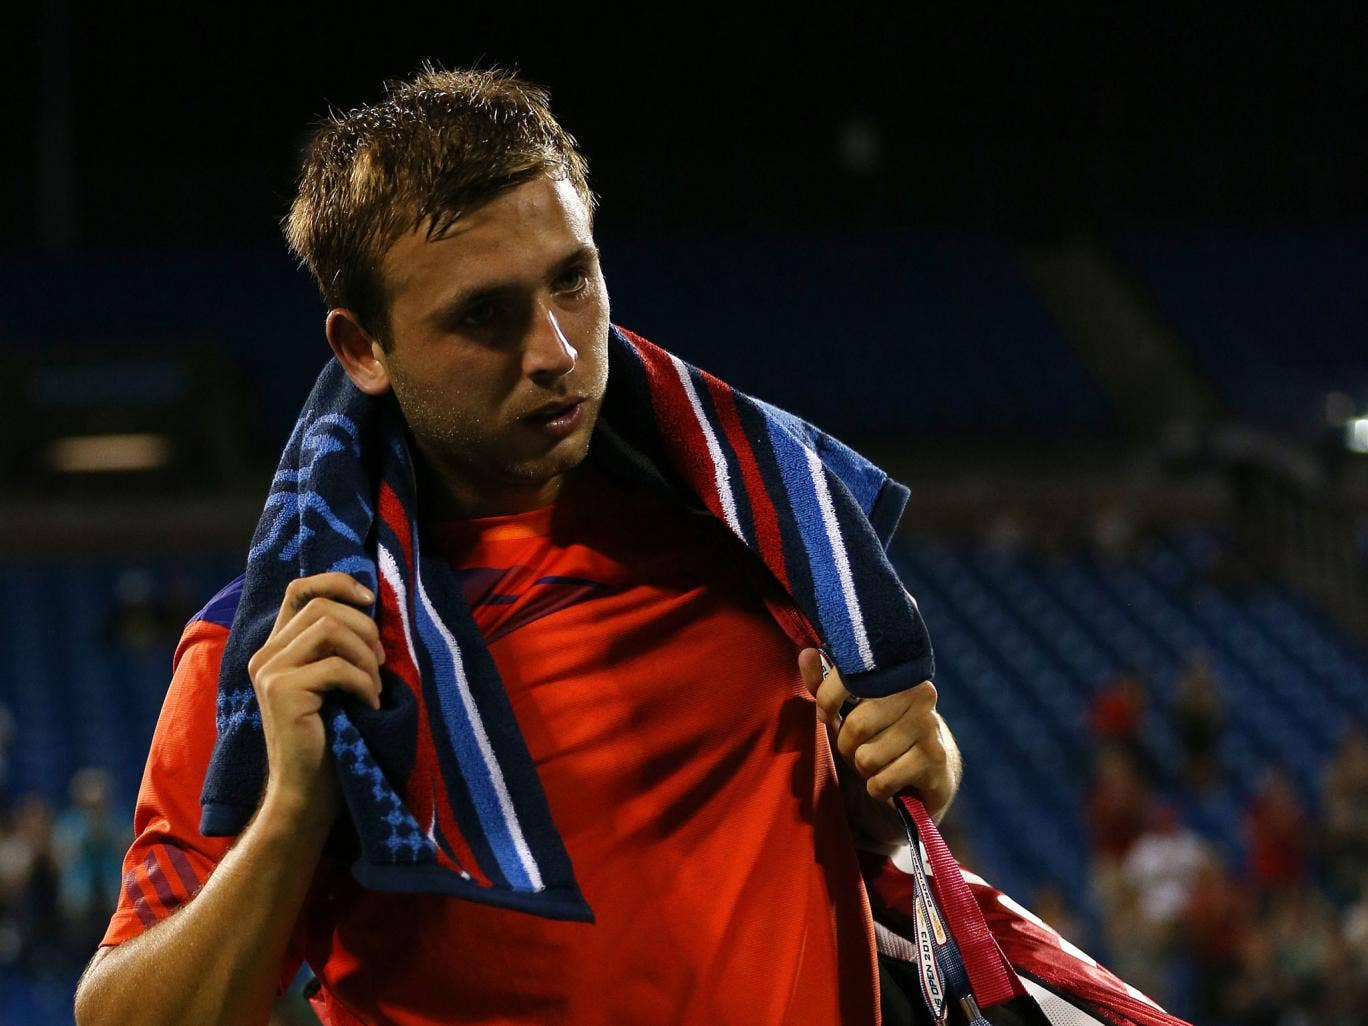 Dan Evans is expected to climb the rankings after his success